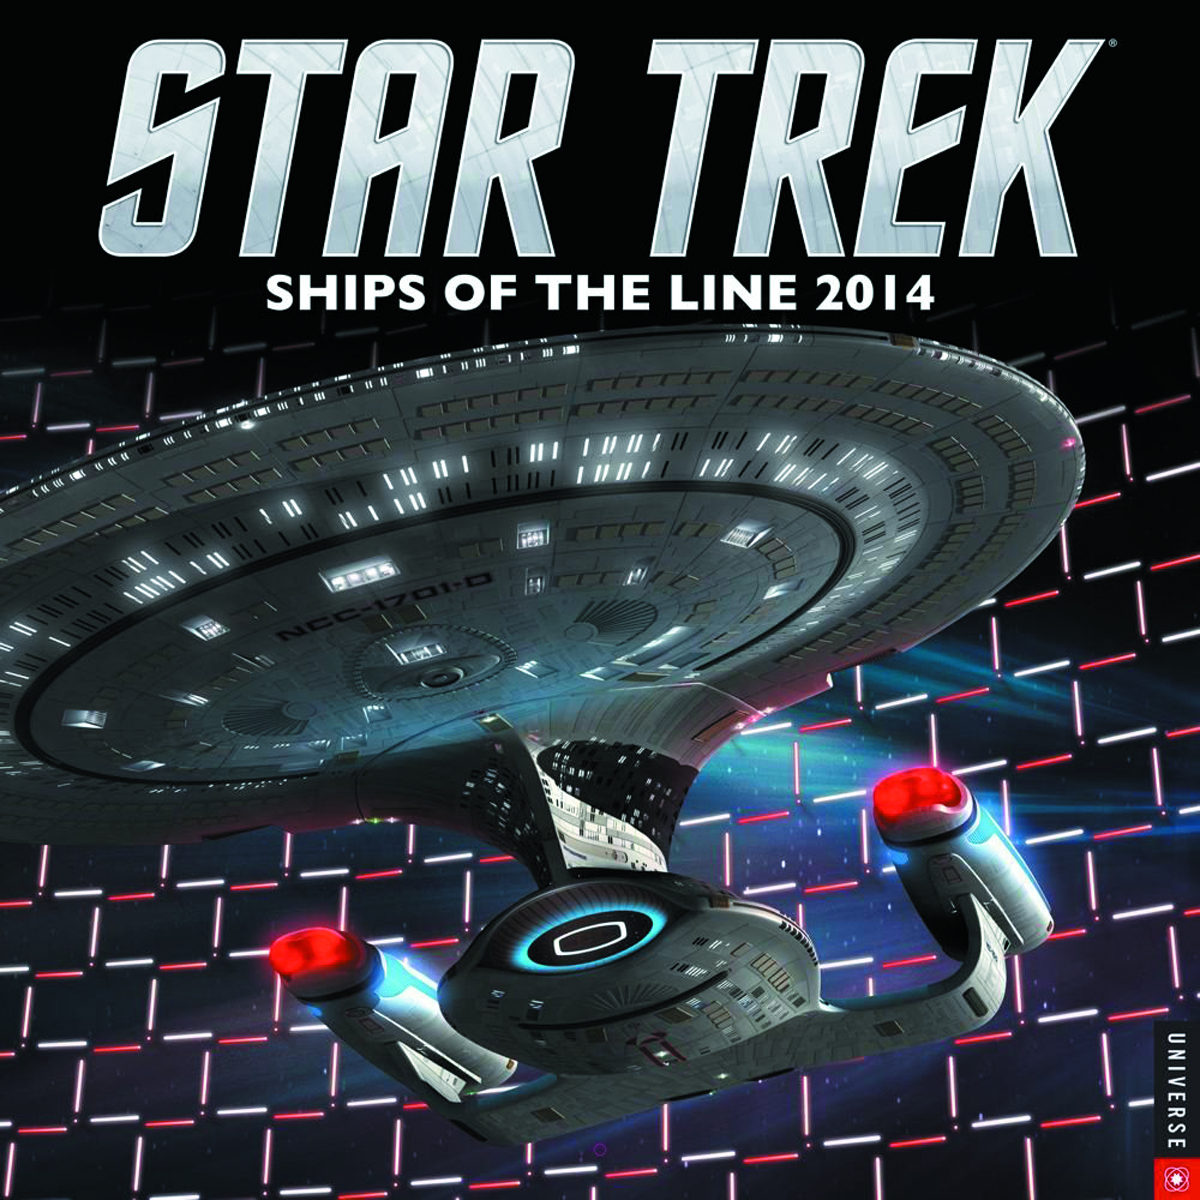 STAR TREK SHIPS OF LINE 2014 WALL CALENDAR